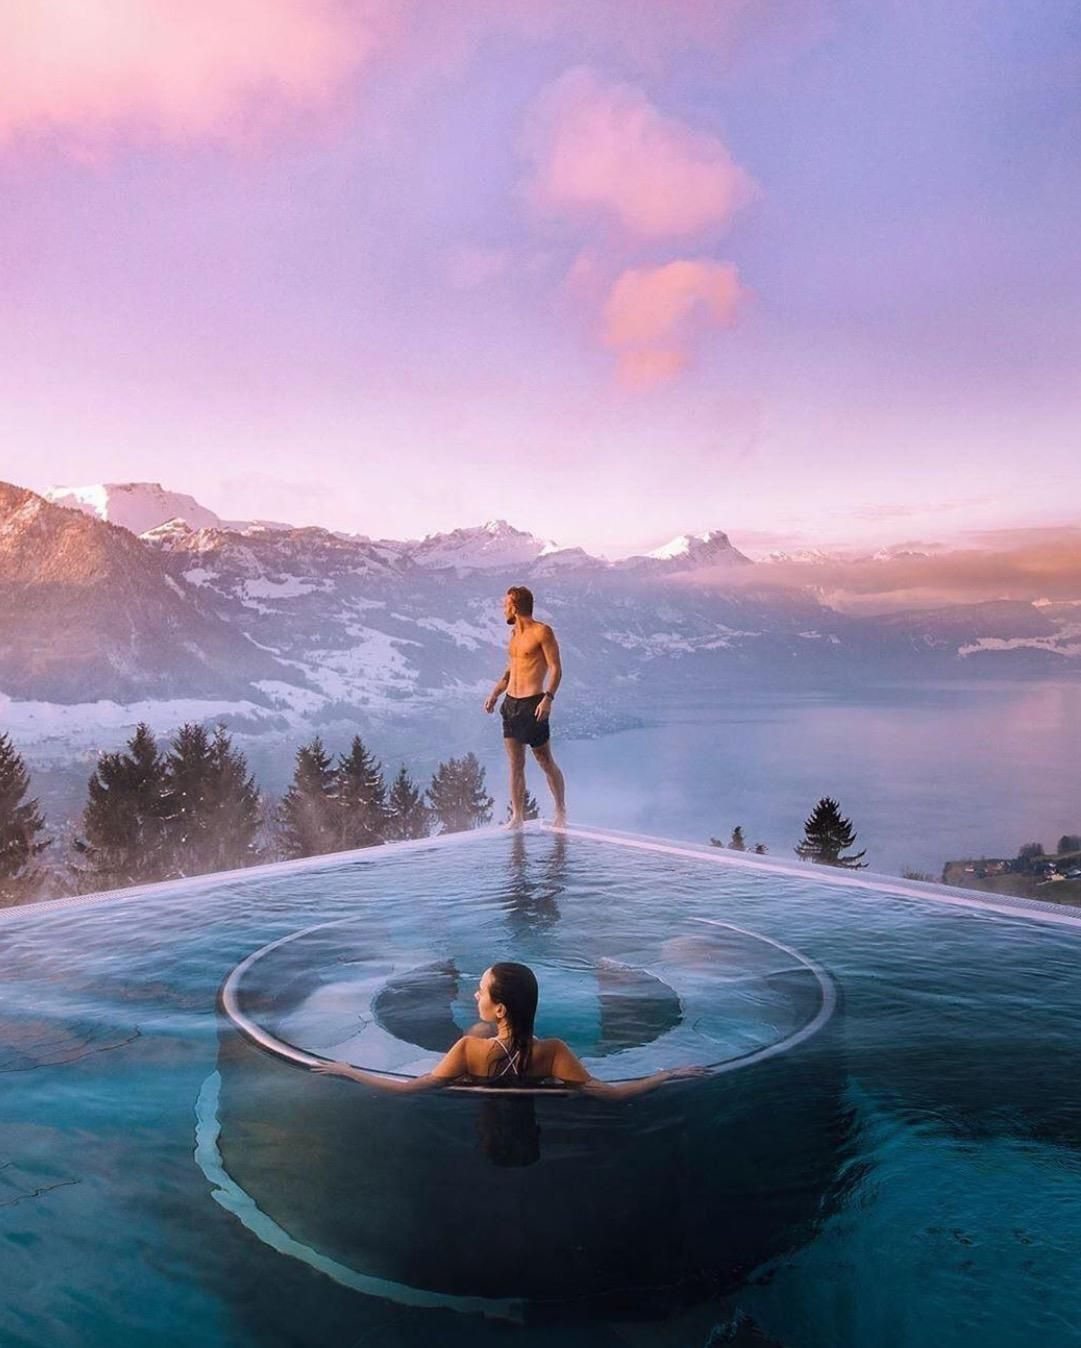 Best Hotel In Switzerland With Infinity Pool Villa Honegg Switzerland In 2020 Hotel Villa Honegg Villa Honegg Couples Vacation Pictures